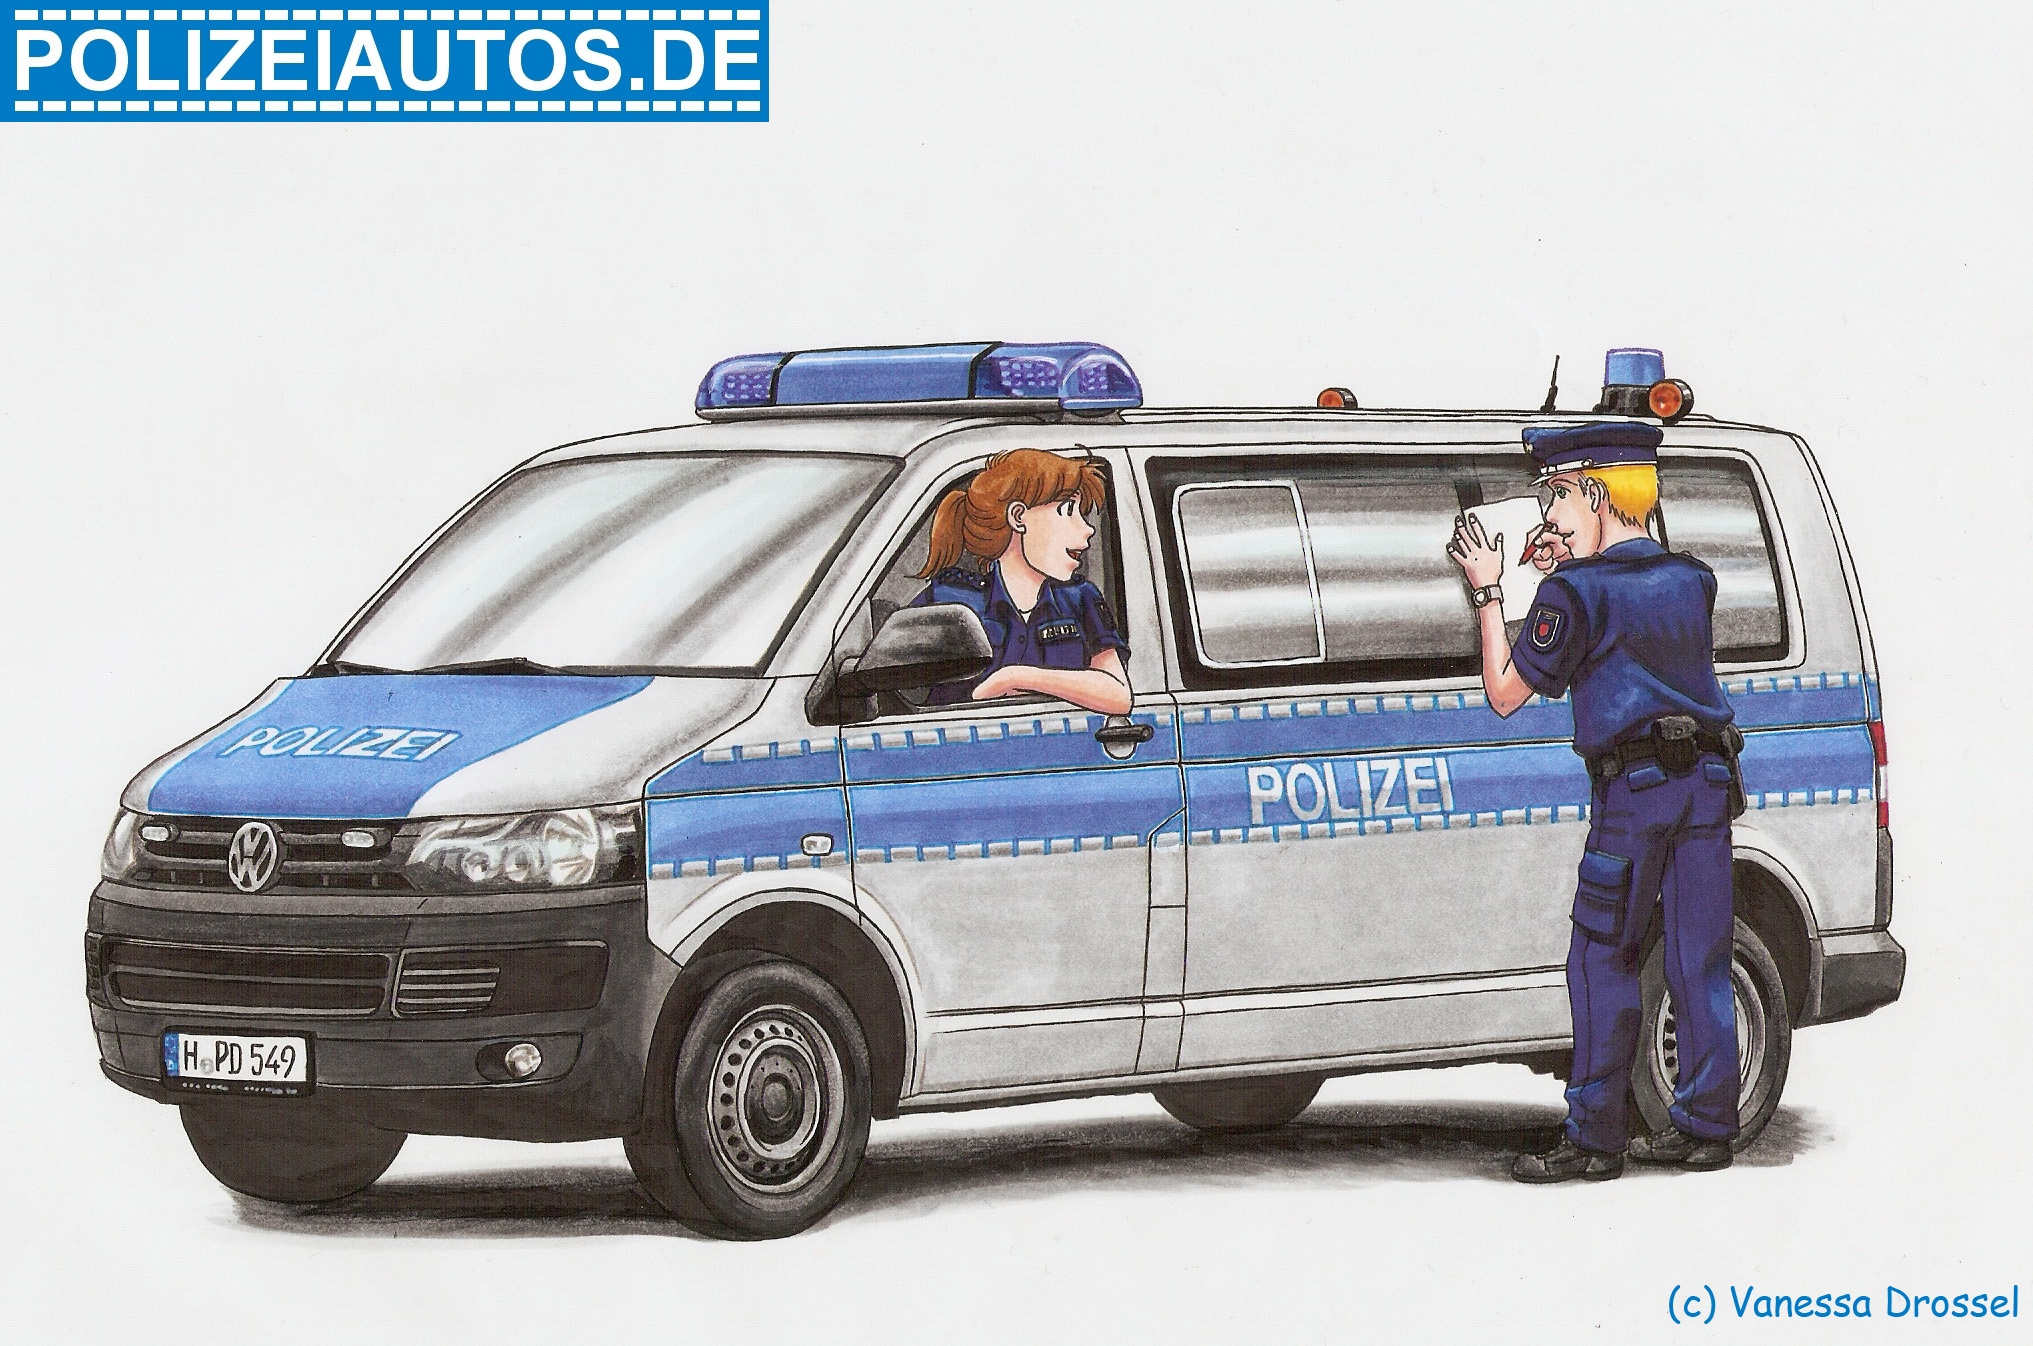 Polizeiautos.de